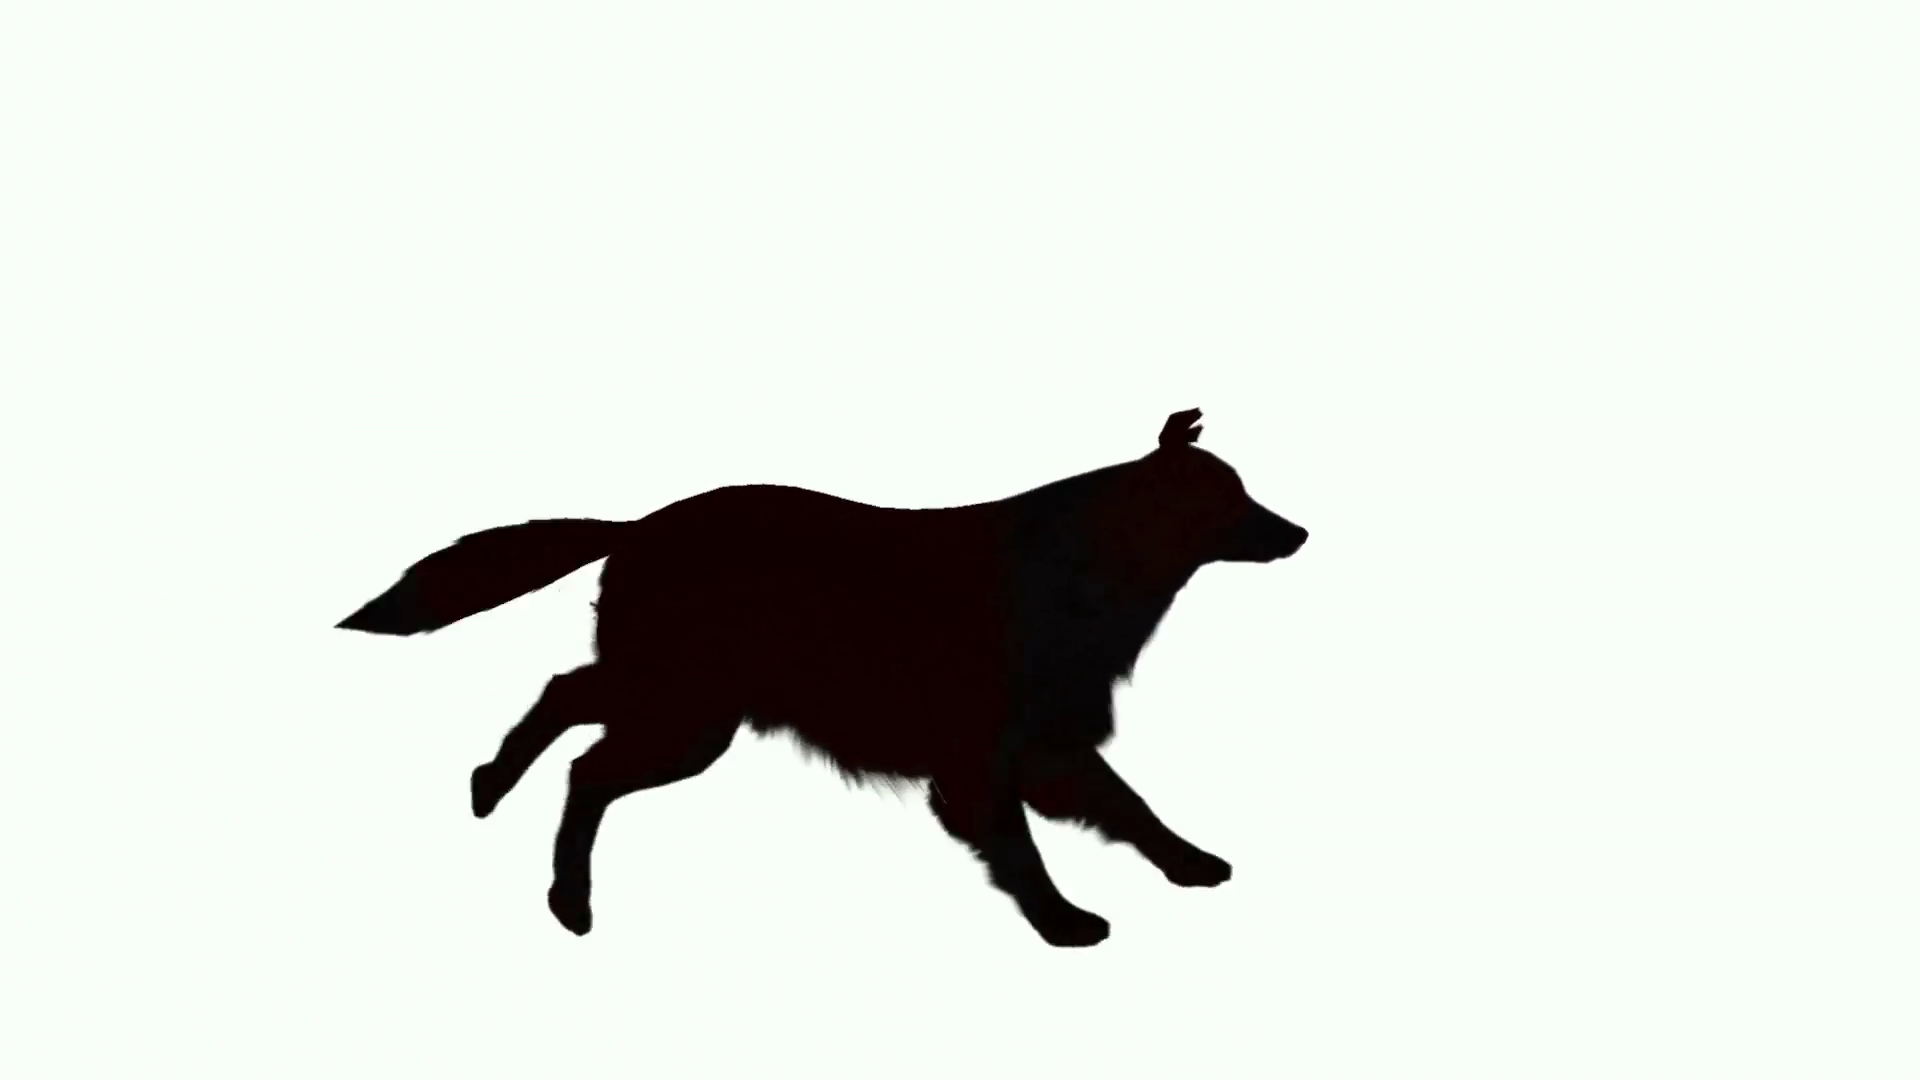 1920x1080 Silhouette Of Dog Running Across The Screen Motion Background